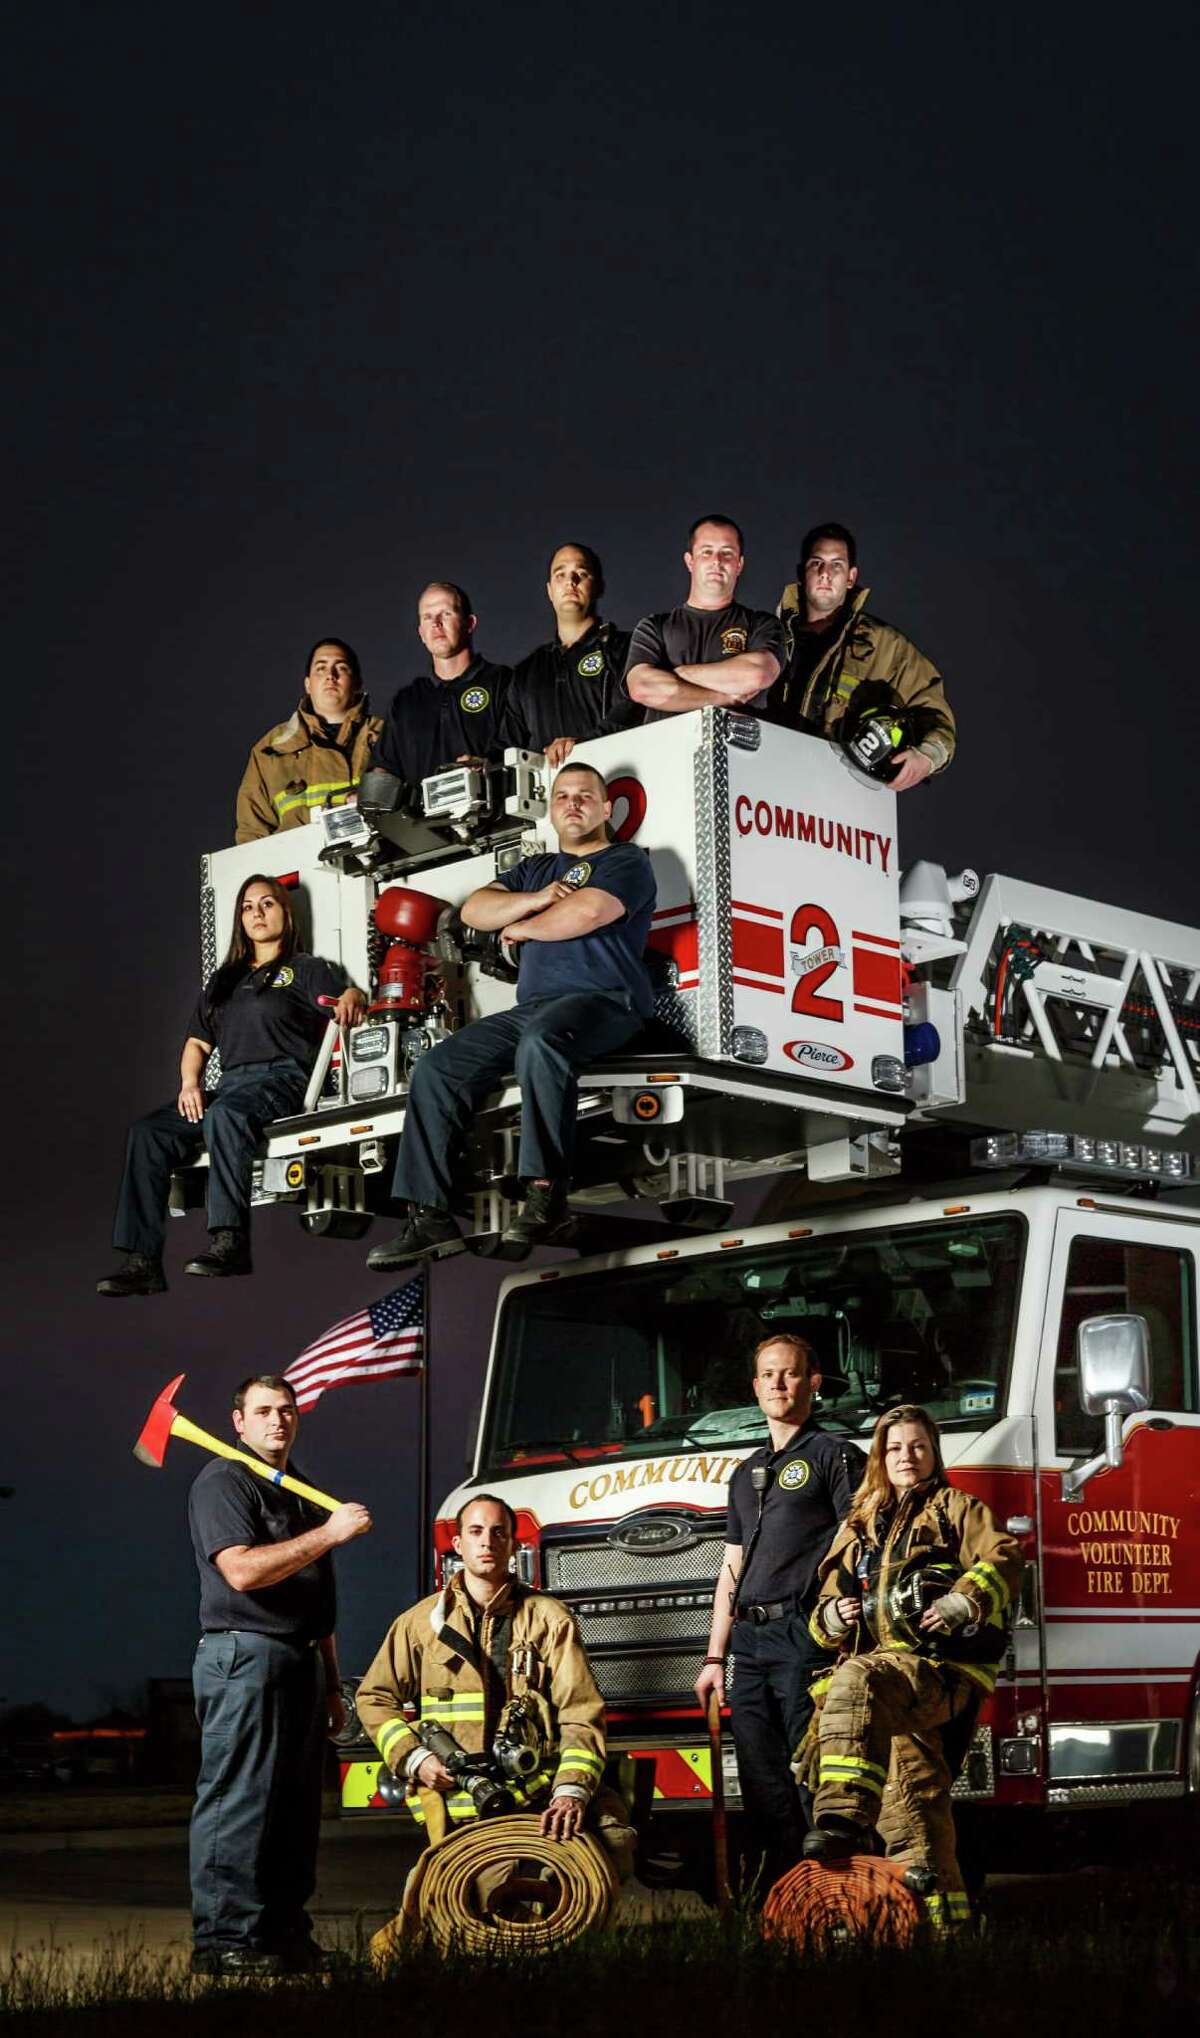 Will Wratney, left to right bottom, Dan Bridges, Brian Gazaway and Cindy Adams pose for a photo along with members of Station 1 and Station 2 of the Community Fire Department, a group of volunteer firefighters serving the Alief, Mission Bend, Katy and Cinco Ranch area, Tuesday, March 11, 2014, in Houston. ( Michael Paulsen / Houston Chronicle )